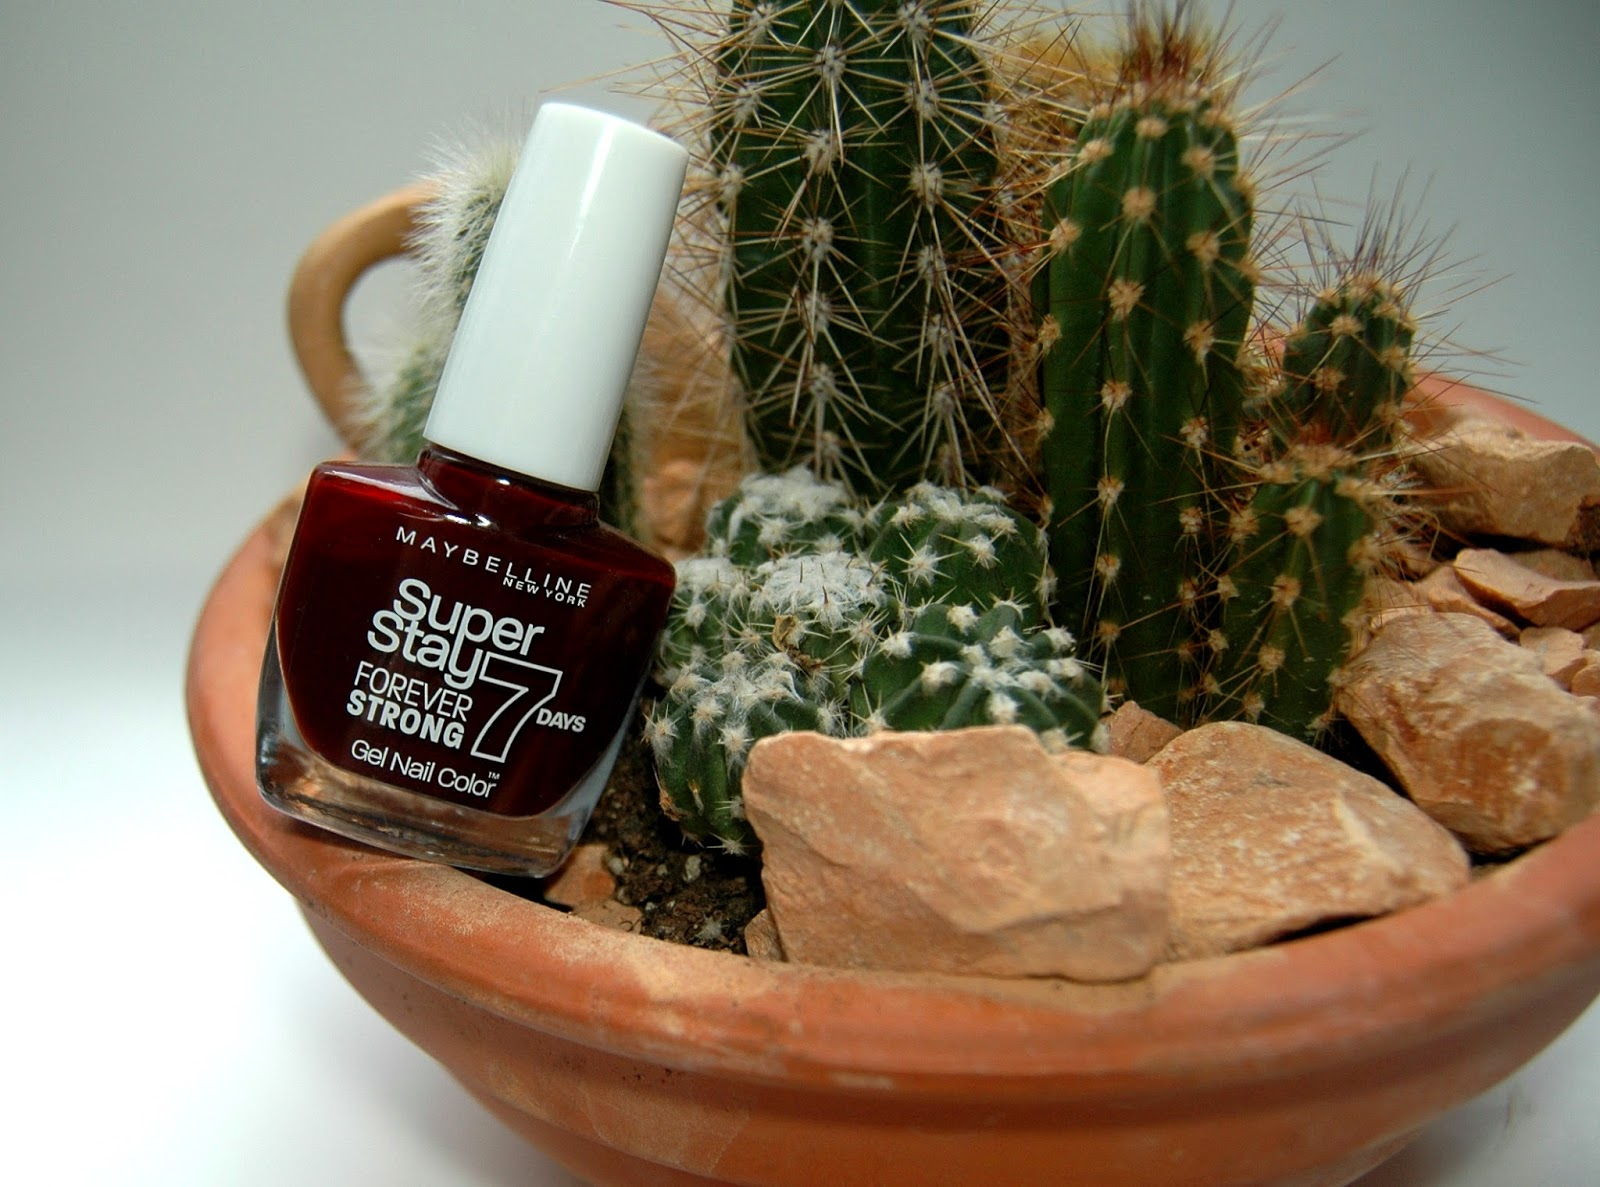 Maybelline Super Stay Nagellack 287 Midnight Red